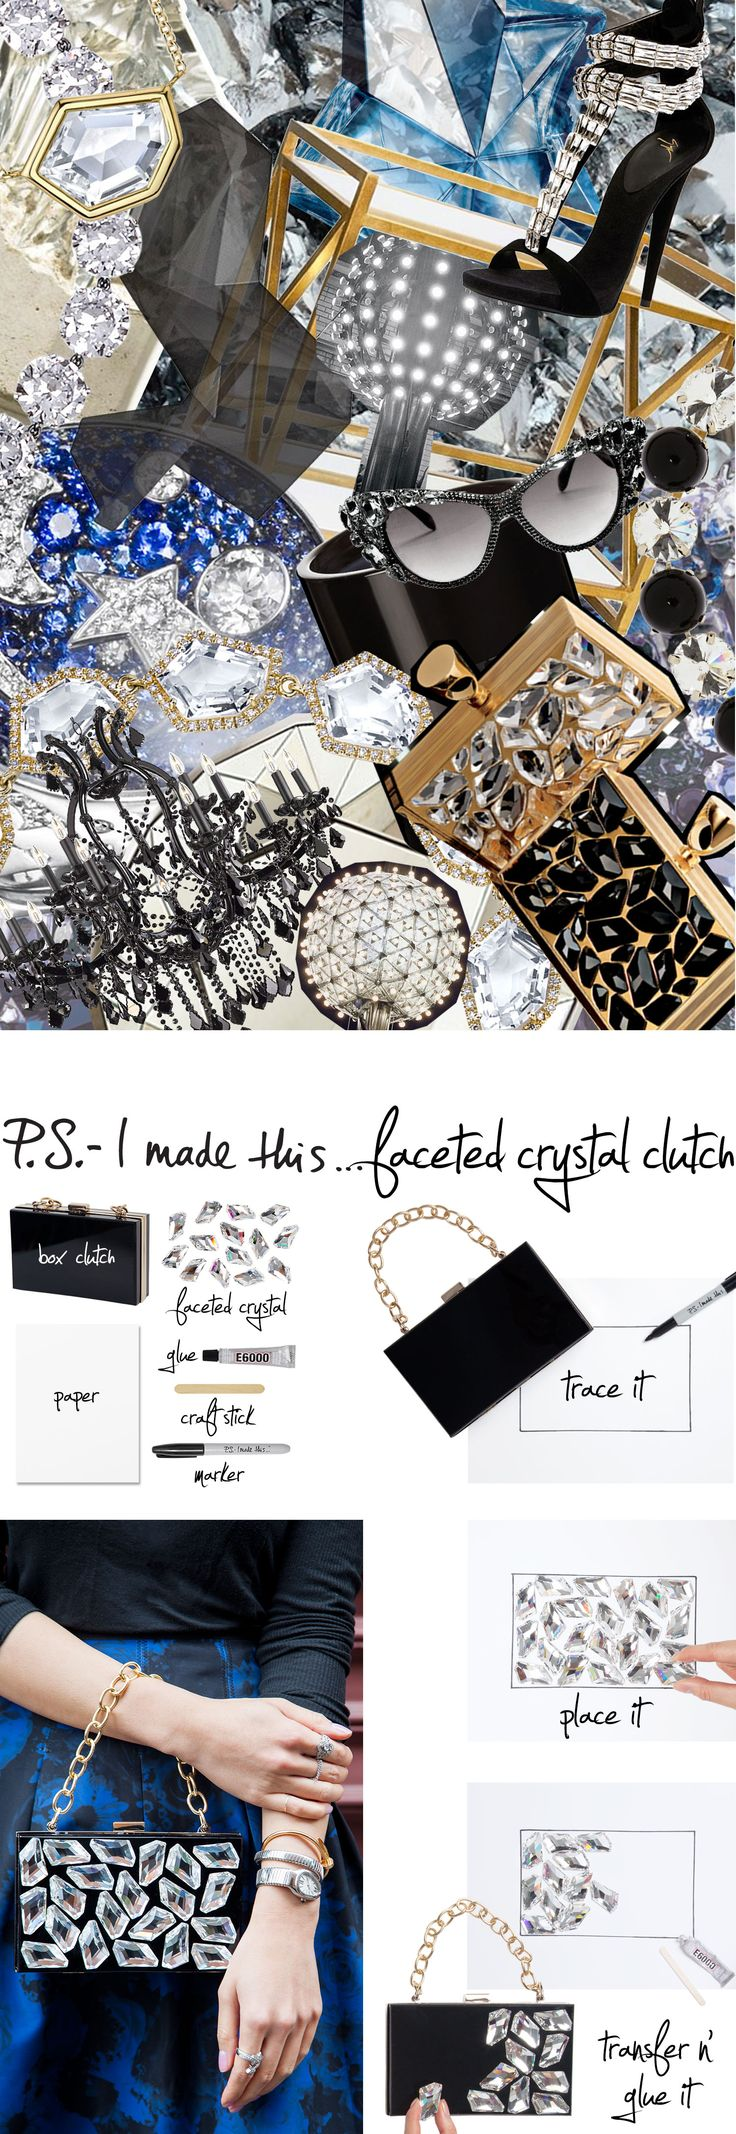 Faceted Crystal Clutch  #DIY #PSIMADETHIS